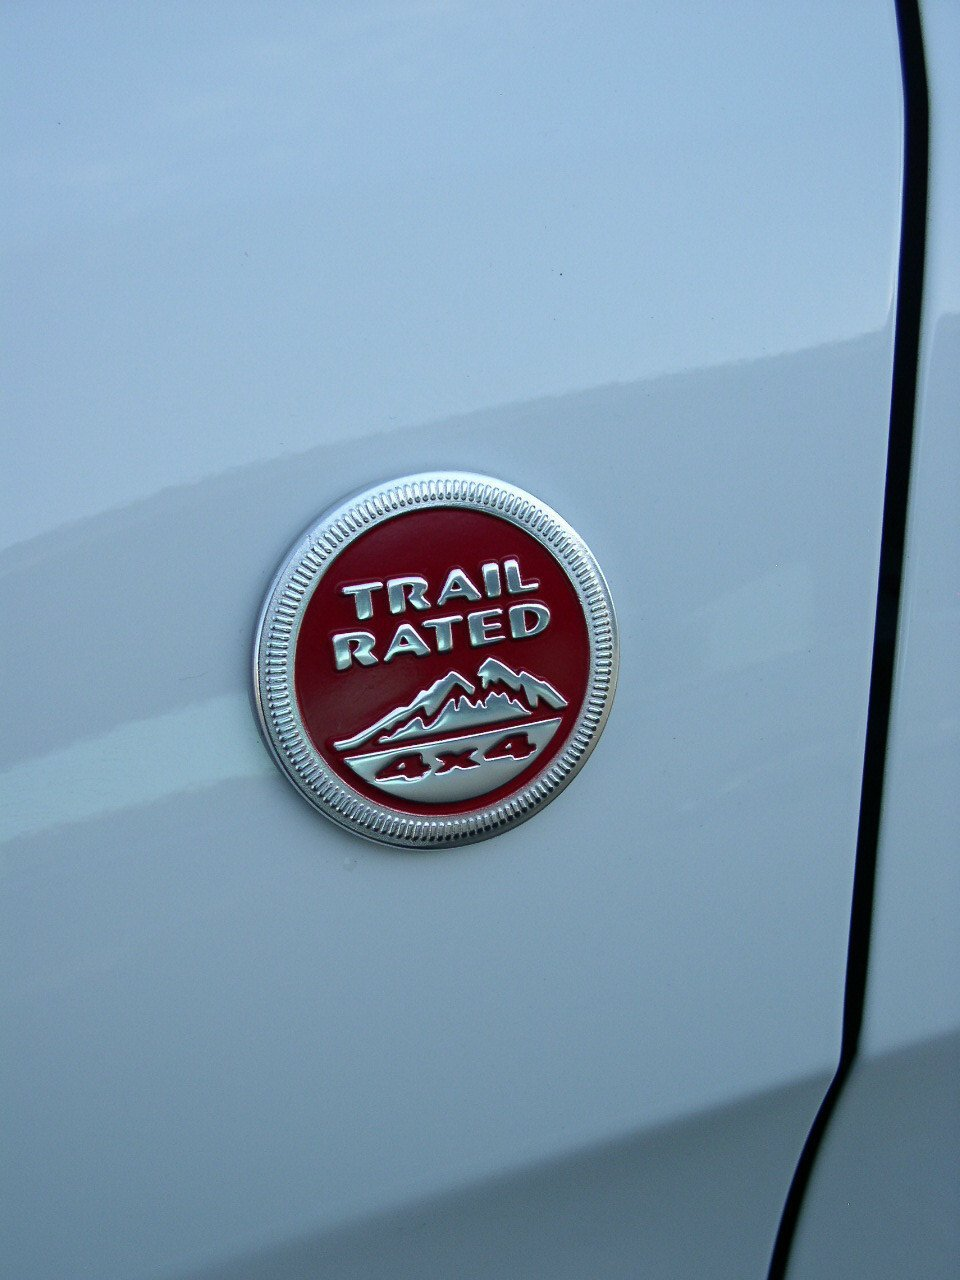 Jeep Grand Cherokee 2013 trail rated 4X4 badge logo nameplate trailhawk red OEM